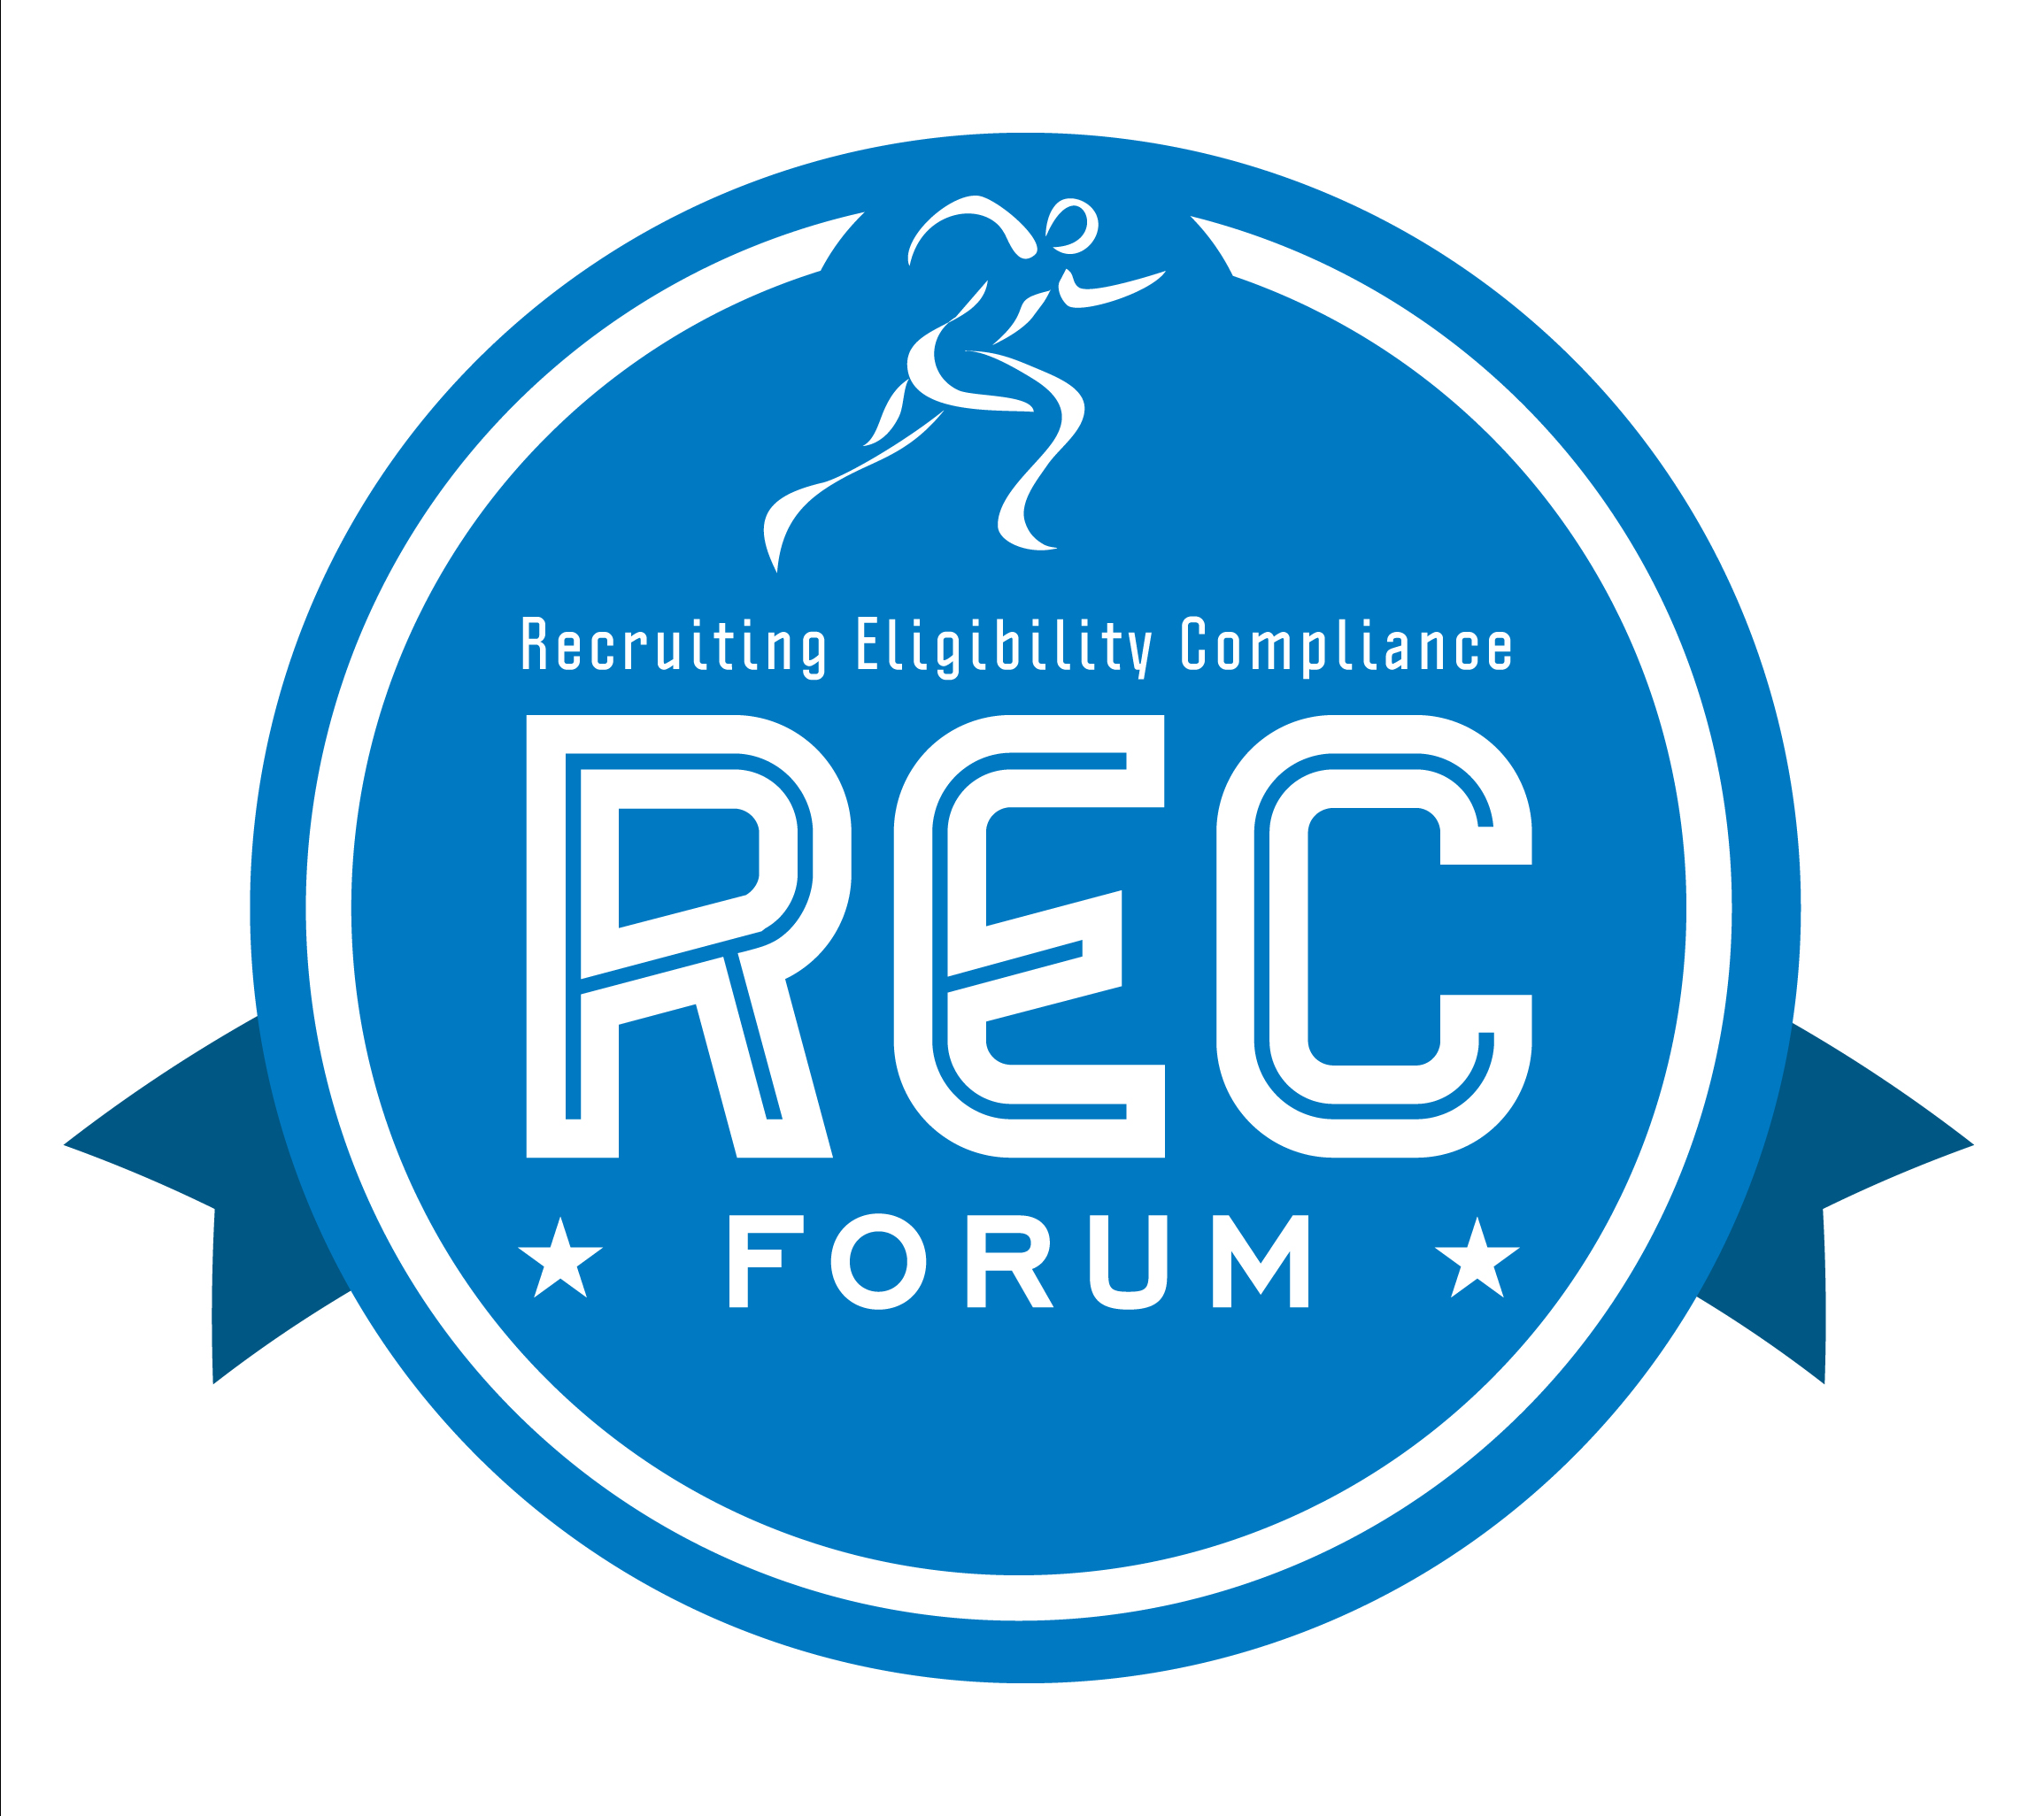 Hampton Roads Sports Commission Brings You The Recruiting Eligibility Compliance Forum